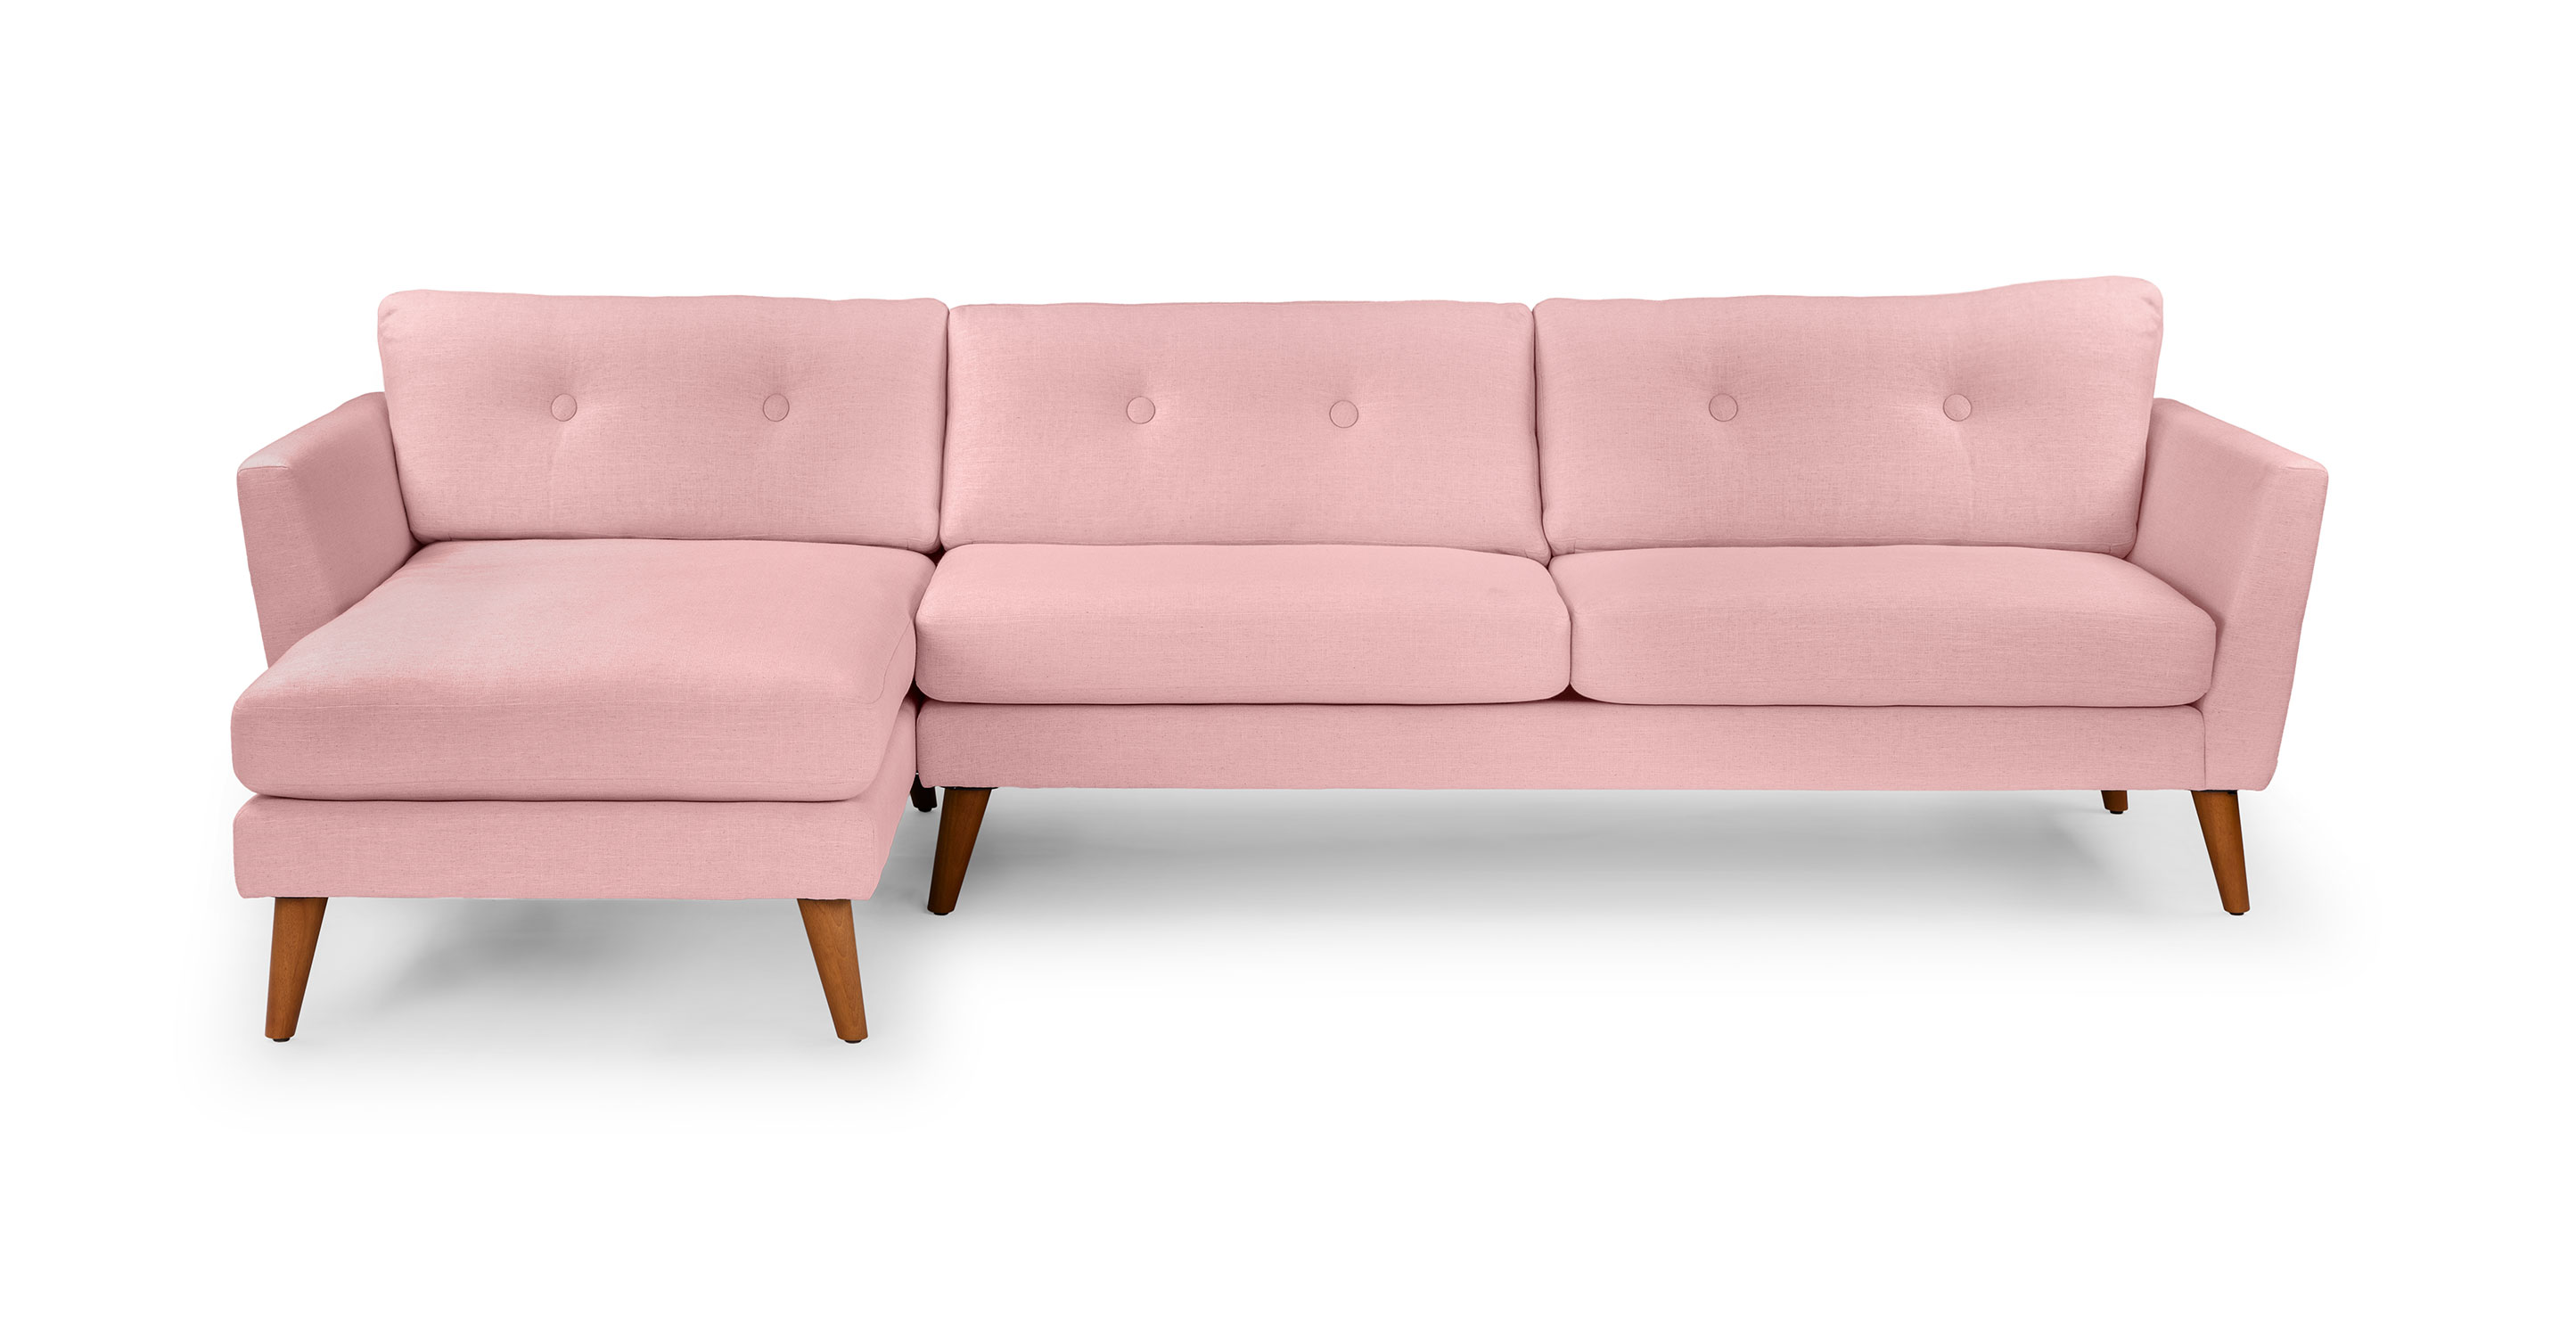 down sofas canada latest sofa designs for living room 2017 emil quartz rose left sectional sectionals article